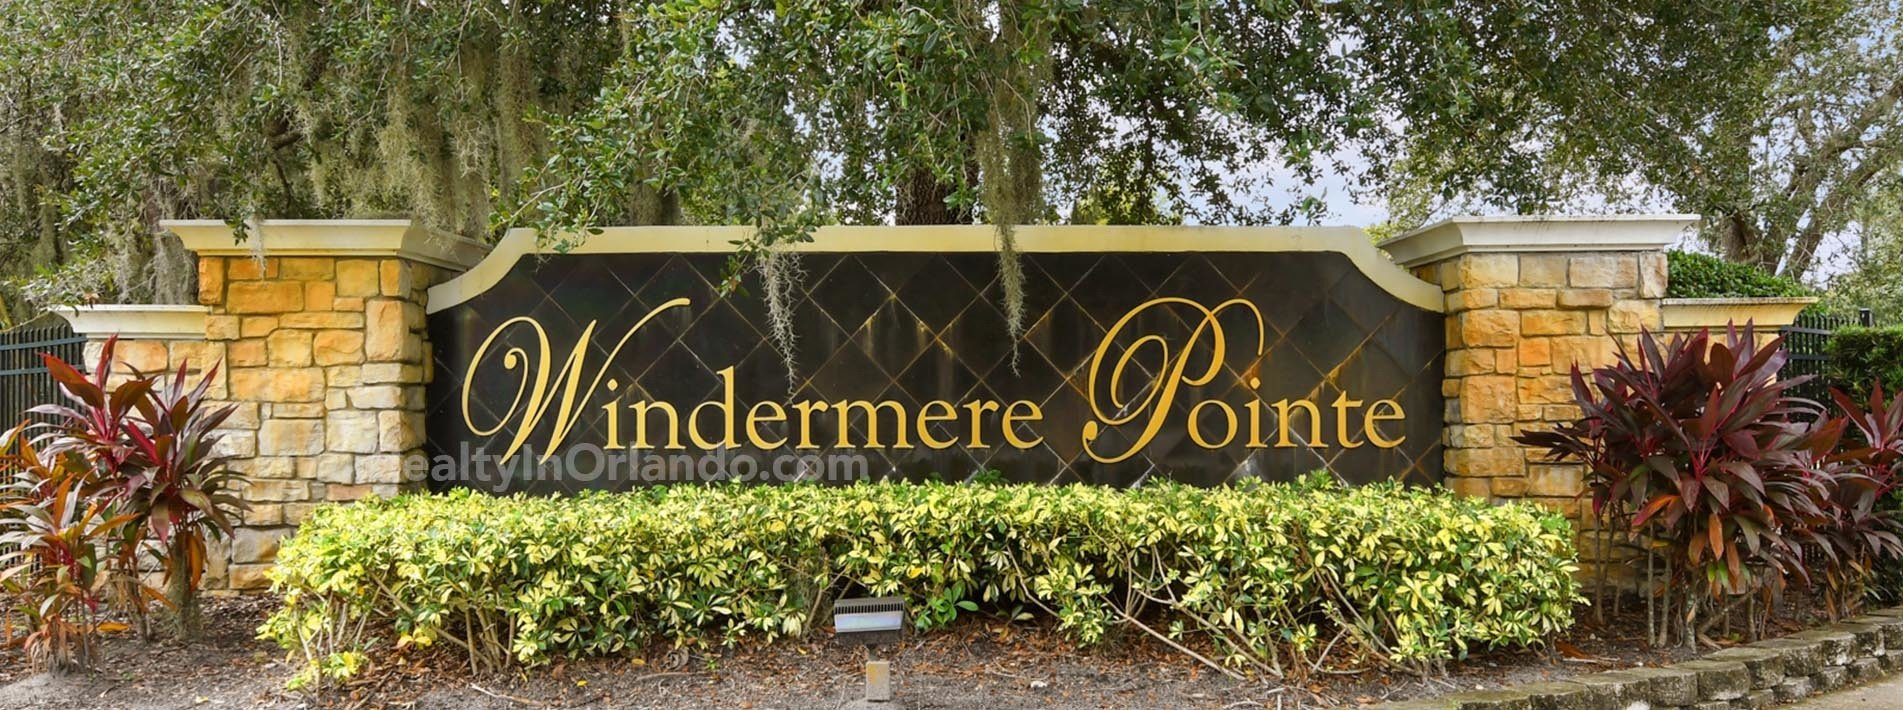 Windermere Pointe Real Estate